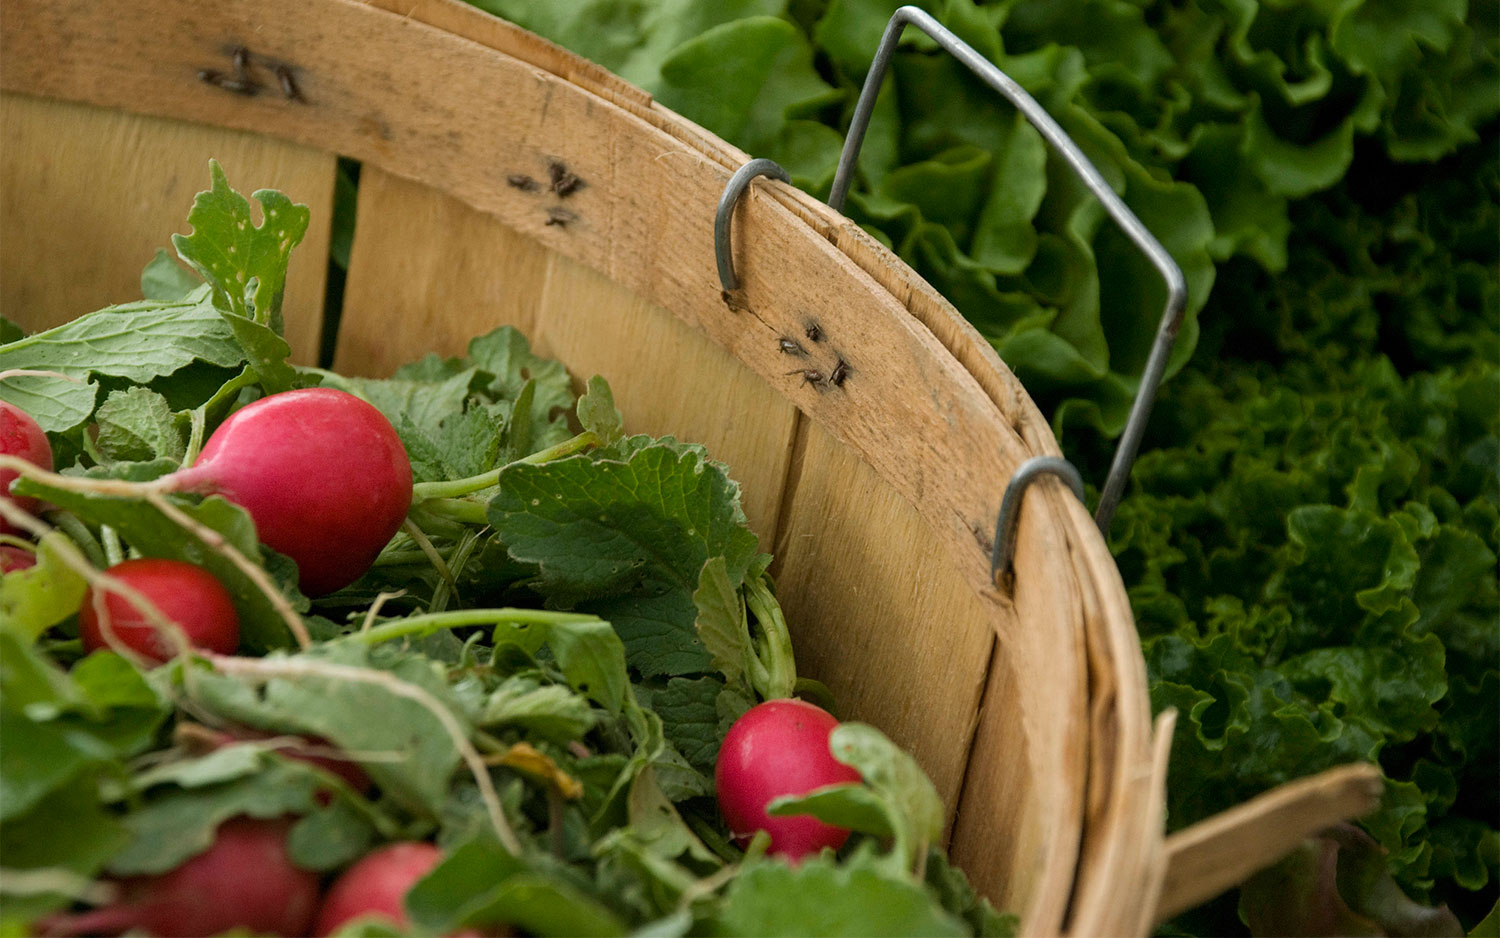 Radishes in a basket surrounded by lettuce.